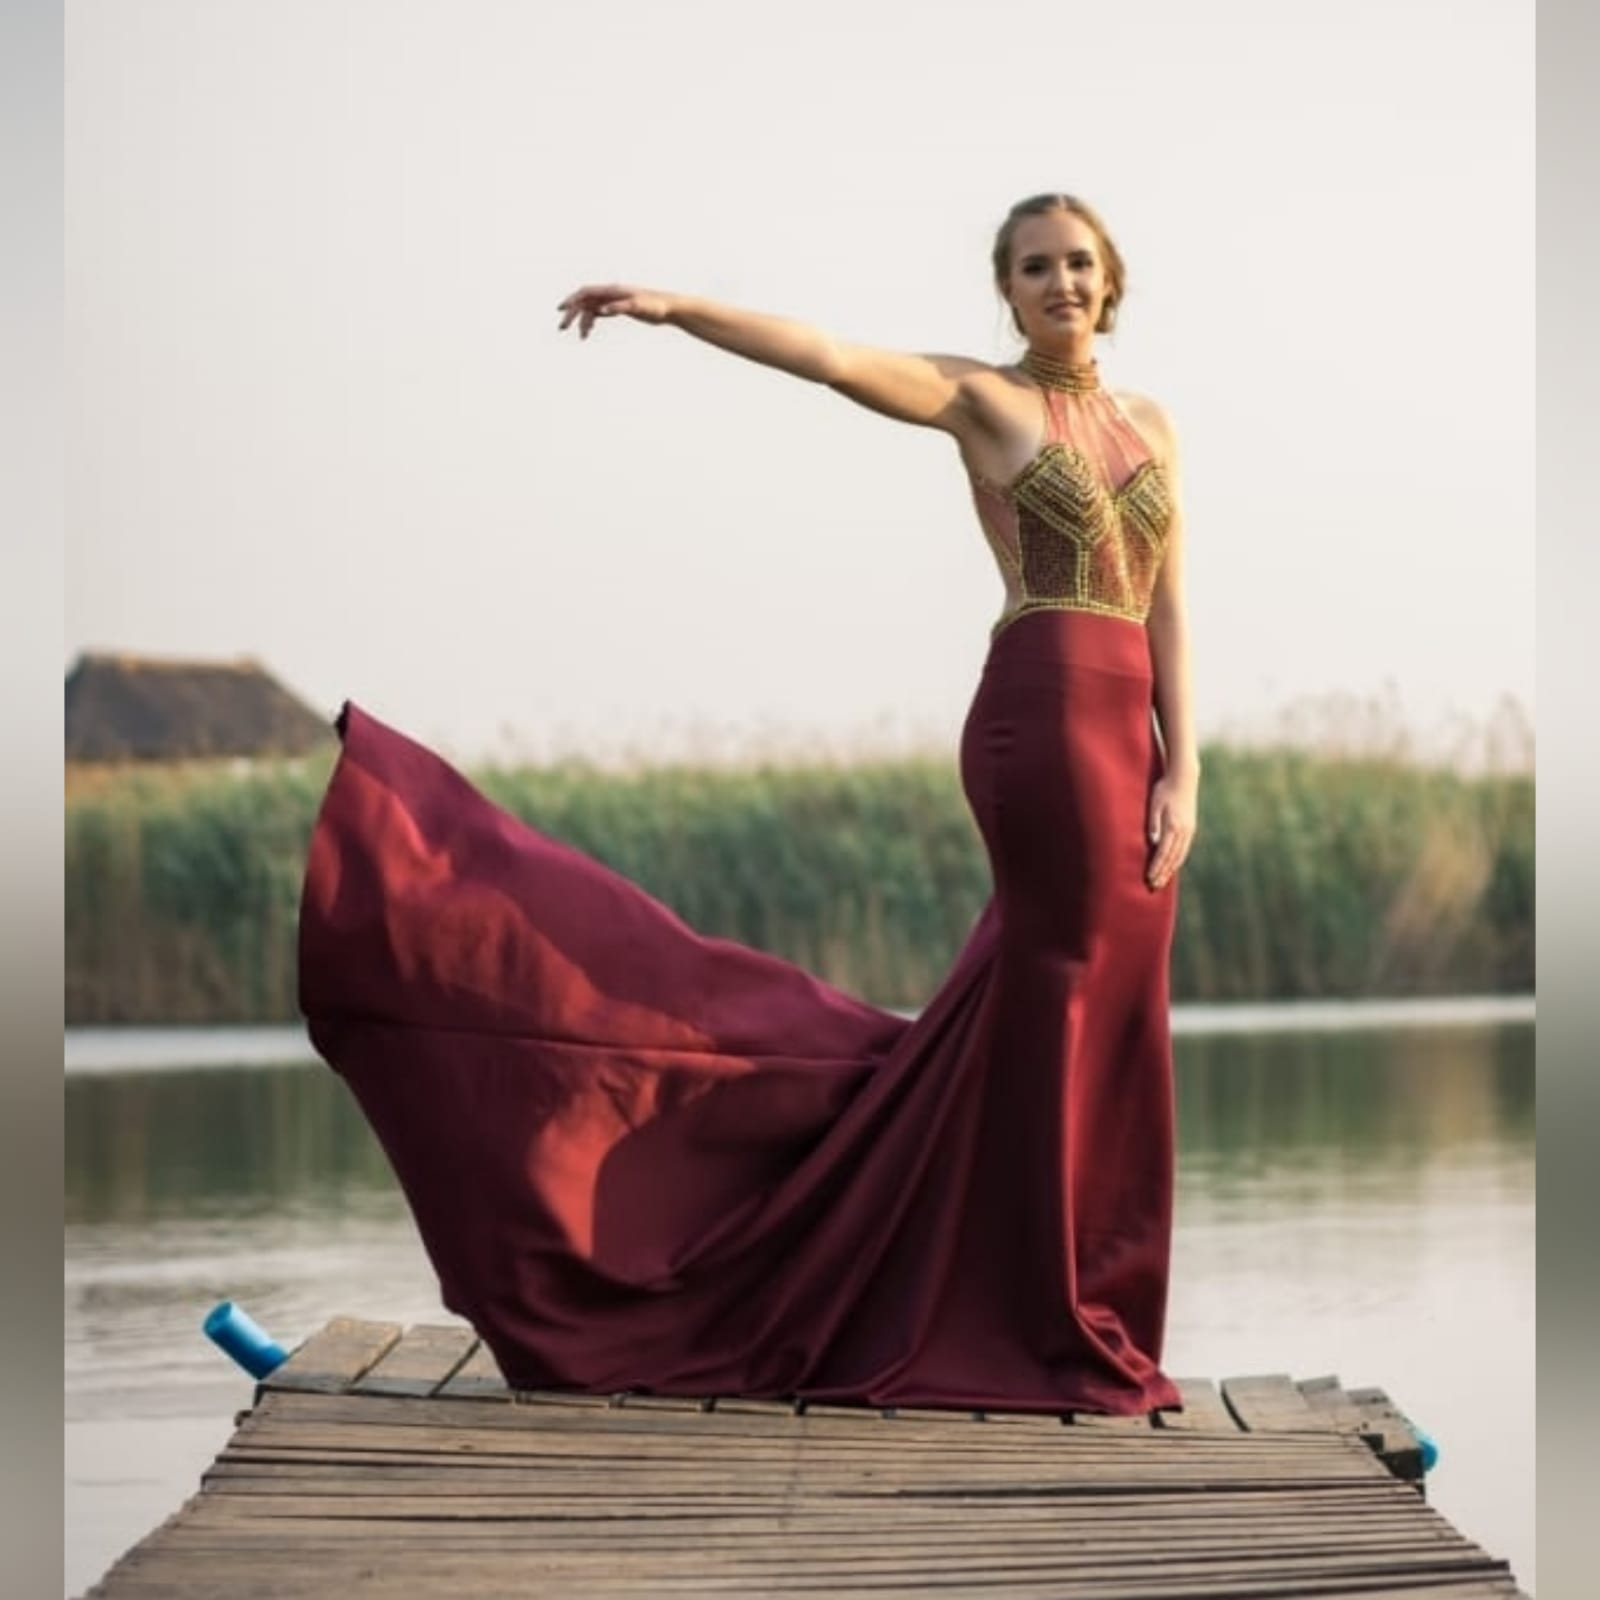 Maroon and gold matric farewell dress with a beaded bodice 1 maroon and gold matric farewell dress with a beaded bodice, low open back with beaded illusion straps. Illusion choker neckline detail with beads and diamante, with a slit and a train.